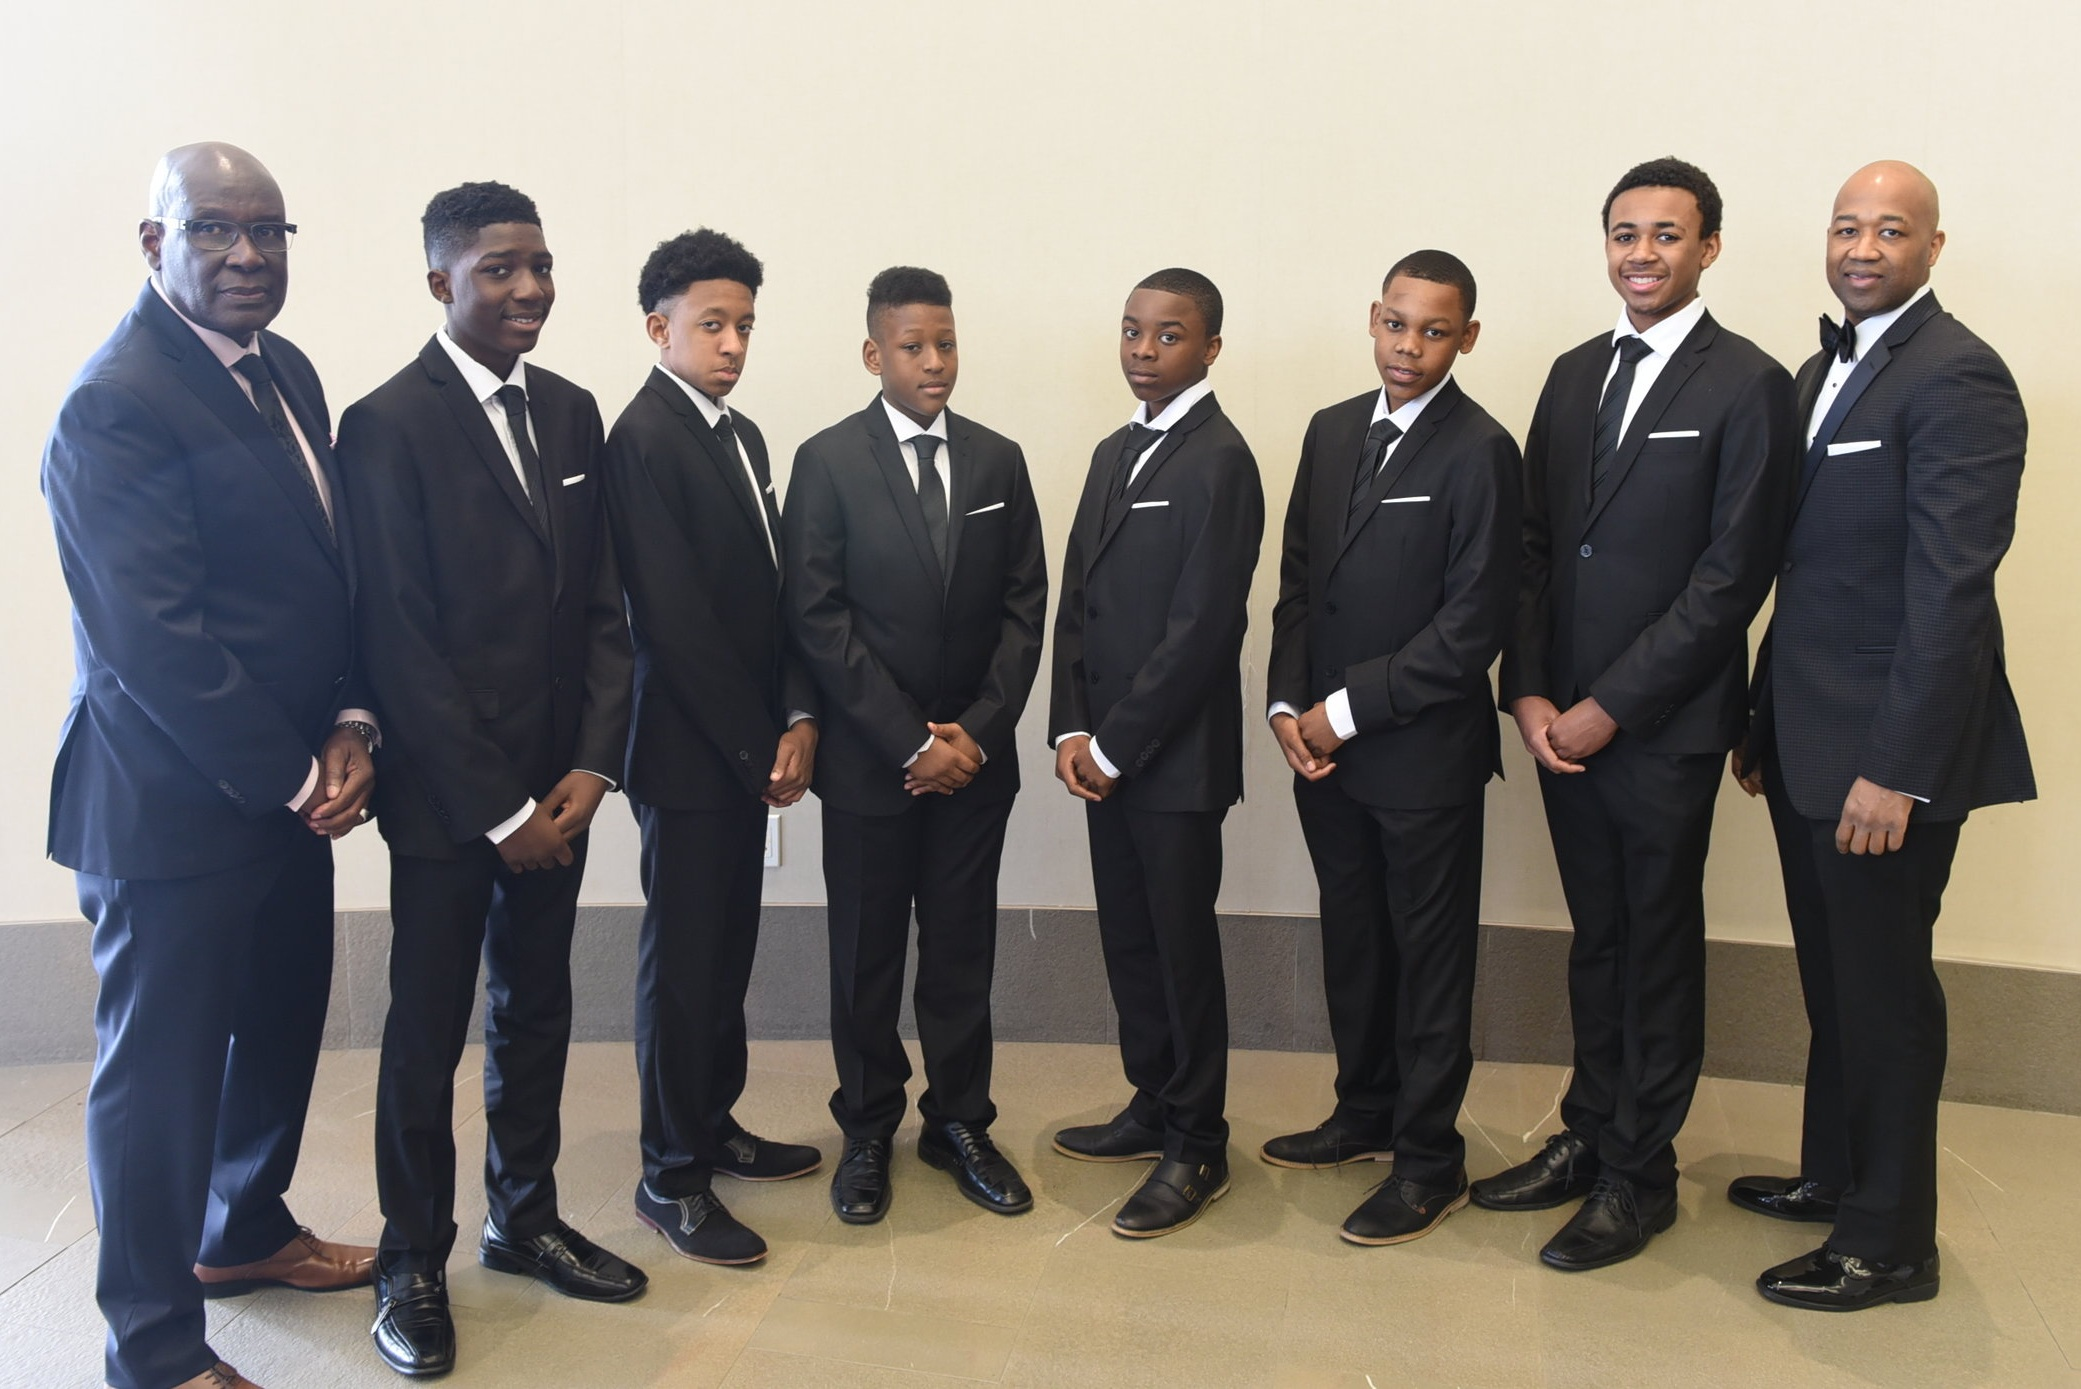 Mickey Hutchinson (l), Director of the Right of Passage Experience Program, and BBPA treasurer Kurt Henry (r) with program participants Ethan Hutchinson, Tajea Henry, Tandre Henry, Cameron Robertson, Reshawn Brown & Nathaniel Peterson. Attending the awards ceremony provided the youths with an opportunity to see what Black excellence looks like.